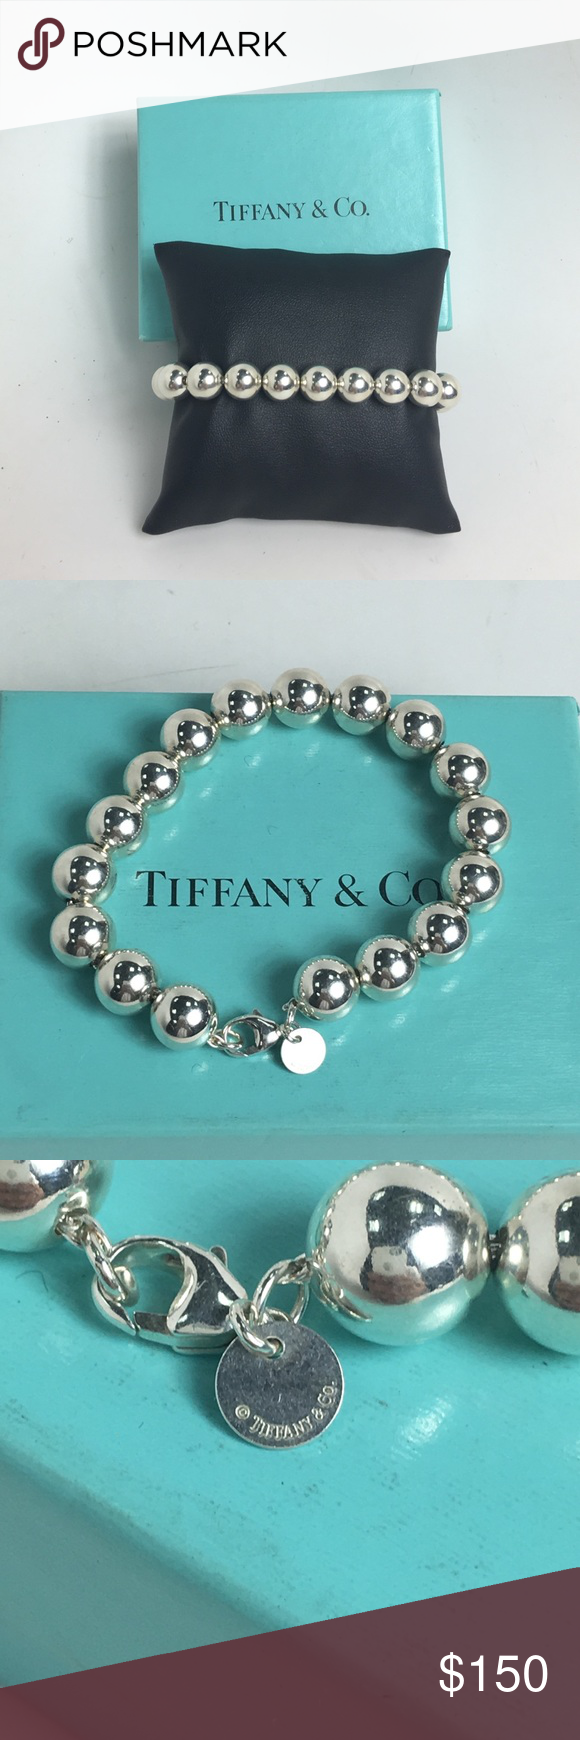 7238157b2 Tiffany & Co bead bracelet 10mm Lovely Tiffany & Co bracelet bead style.  10mm beads 7.5 inches long. This item is a authentic sterling silver T&C  product.